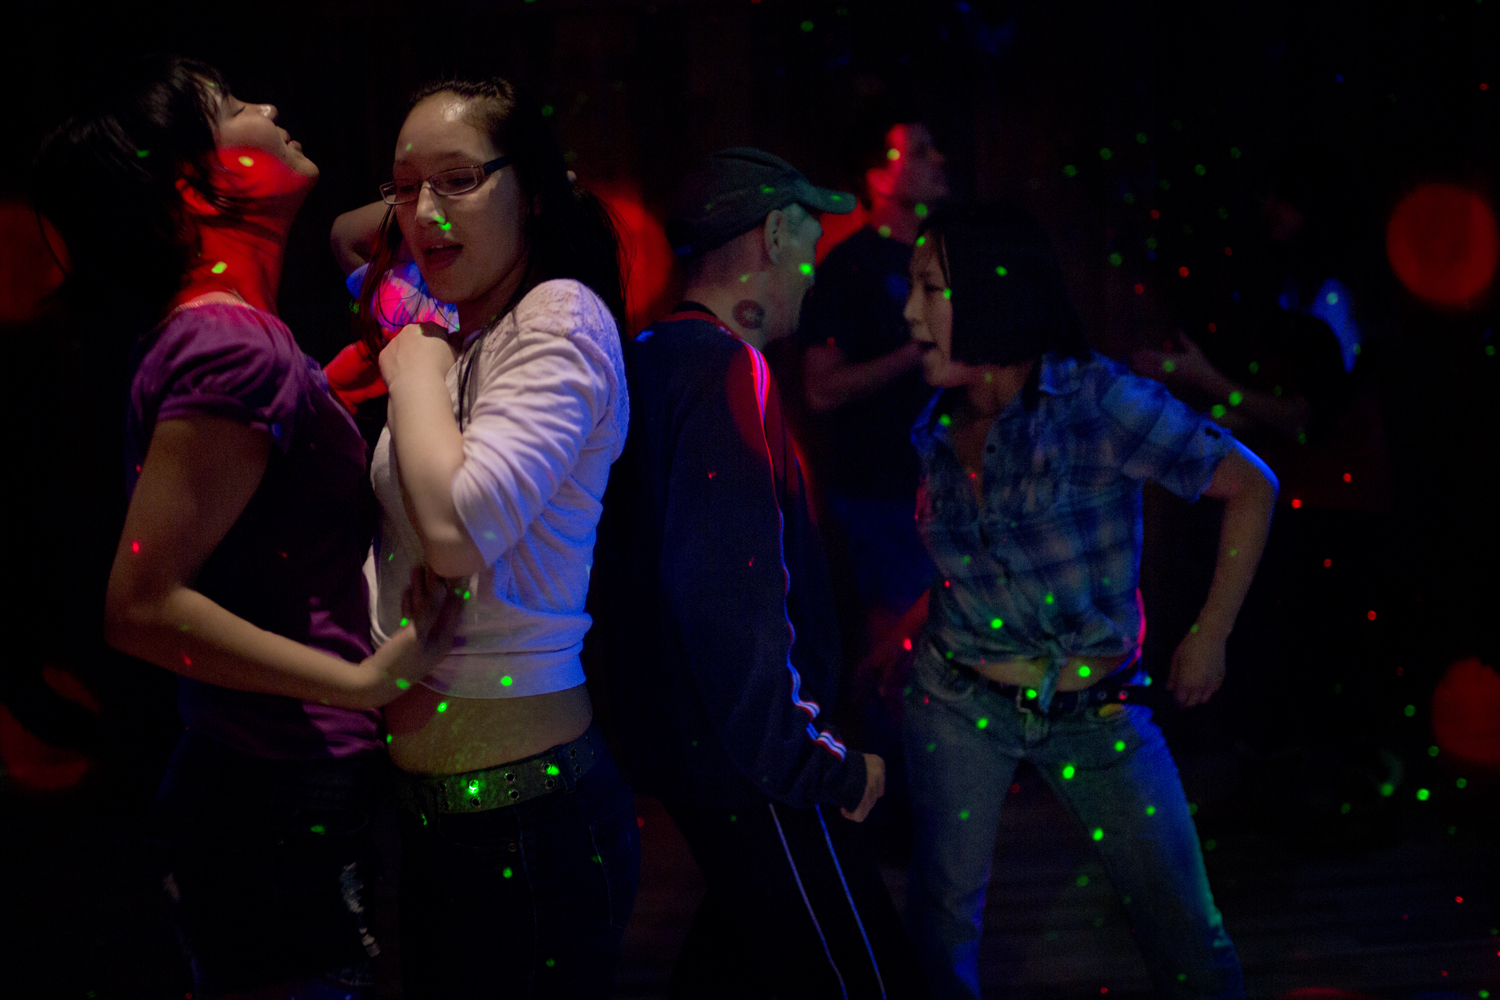 Canada, Sept. 17, 2013. Kelly Amaujaq Fraser (left) dances with friends at a bar.